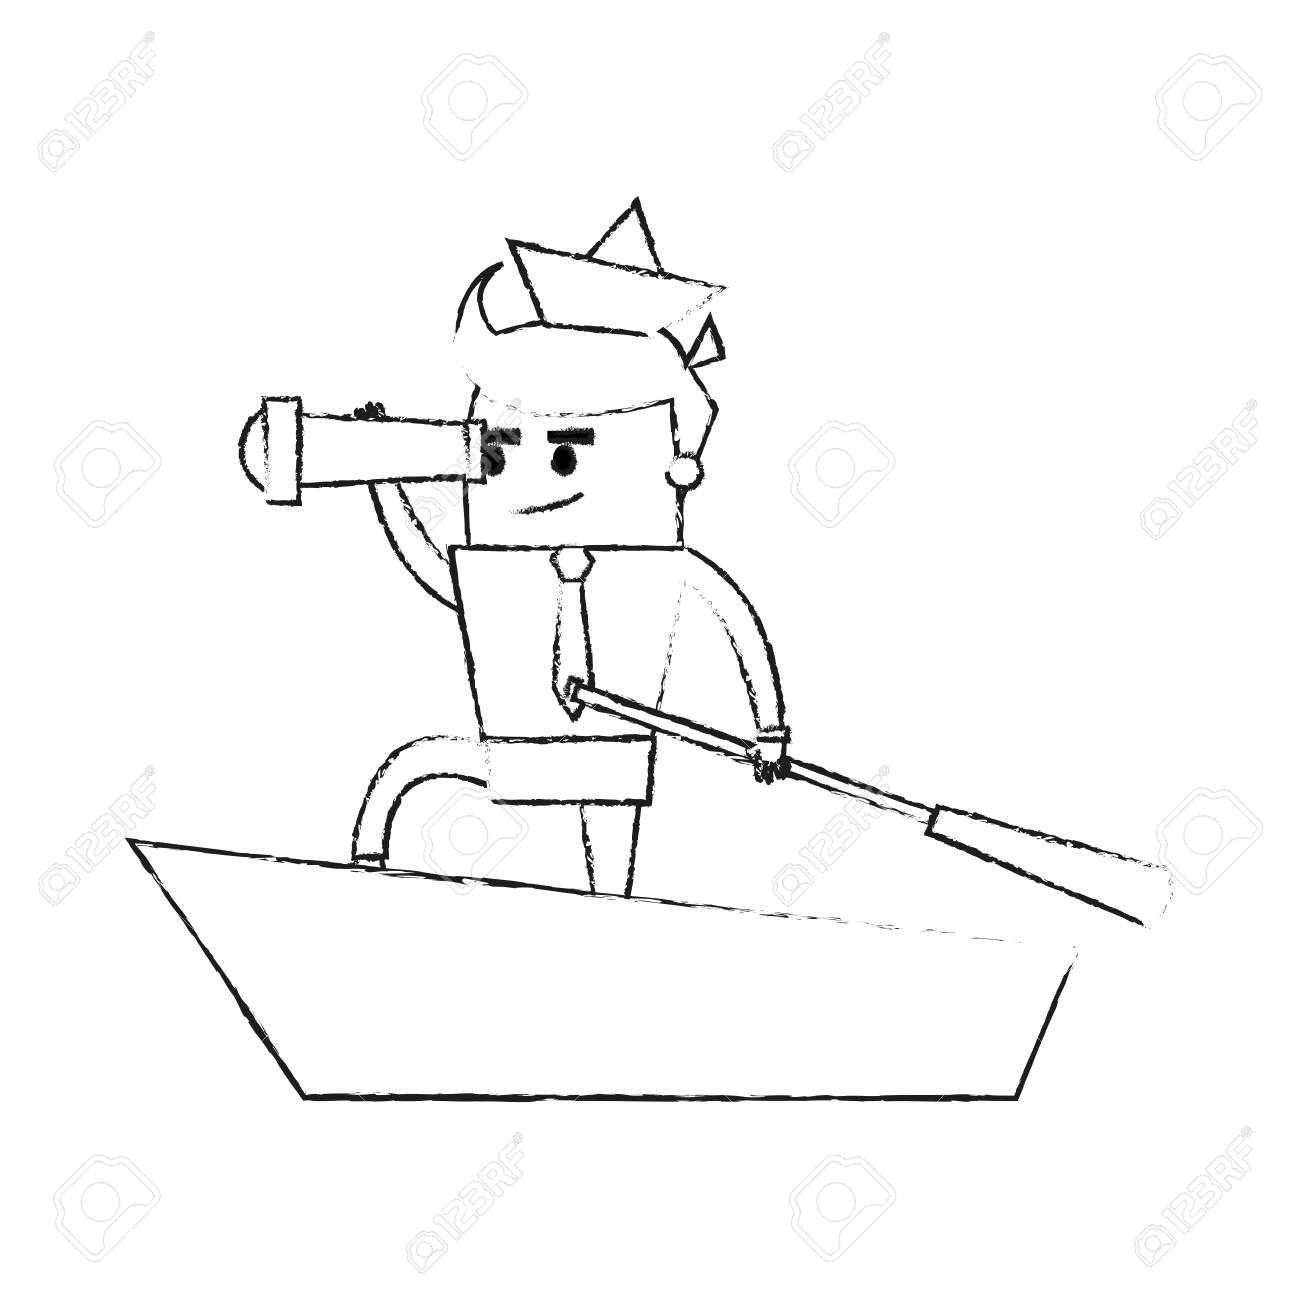 1300x1300 Blurred Silhouette Image Cartoon Leader Business Man In Boat